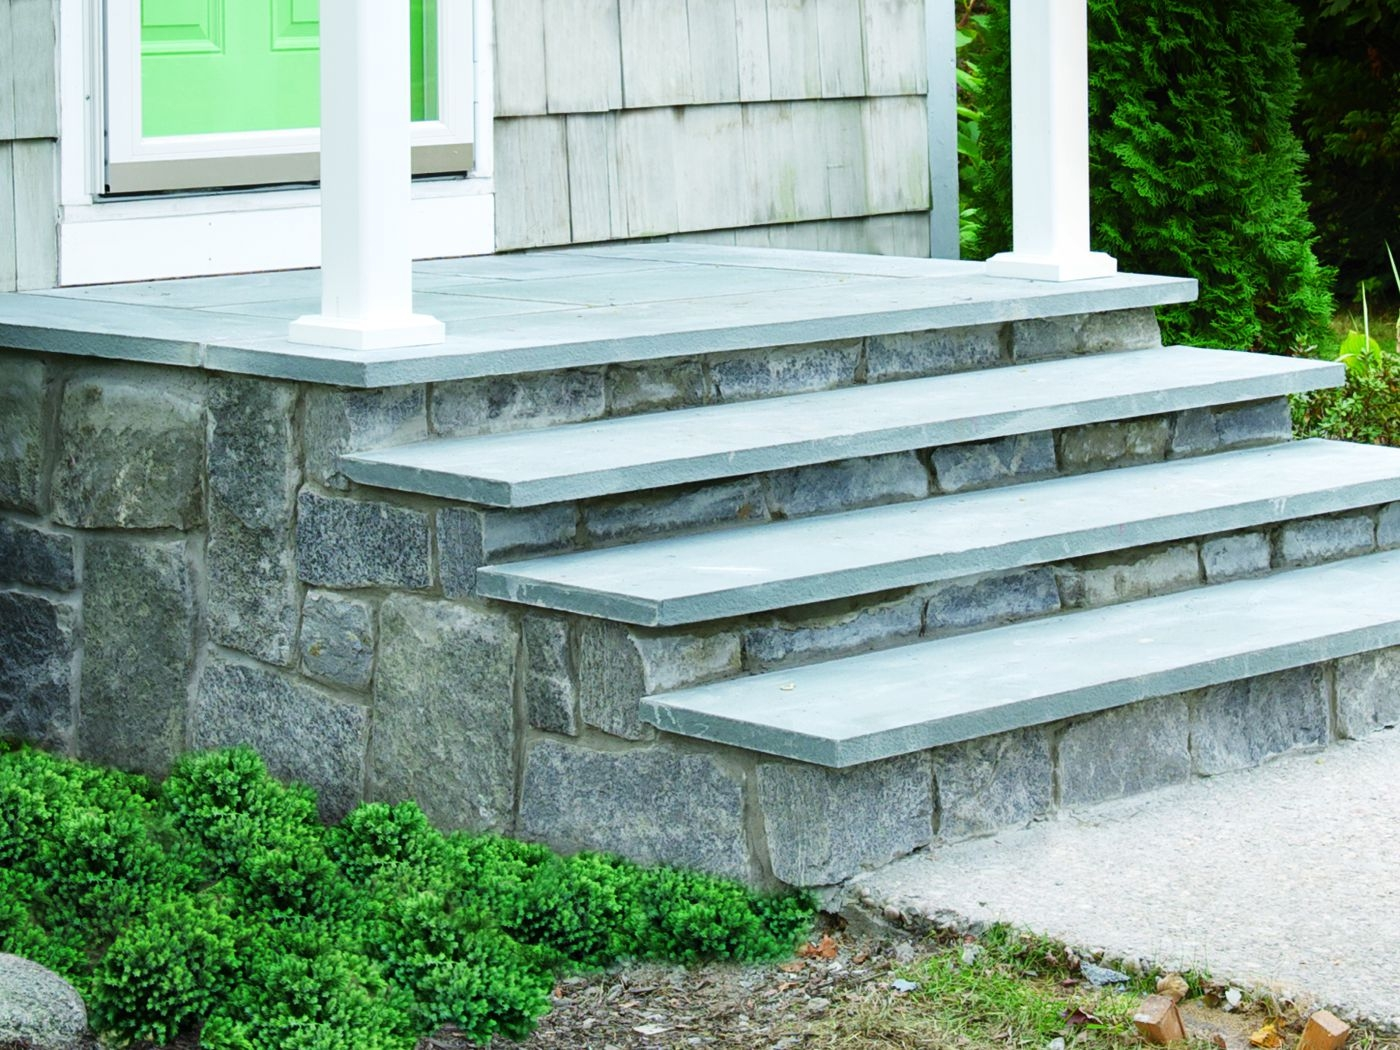 How To Clad Concrete Steps In Stone This Old House   Best Stone For Outdoor Steps   Concrete Steps   Garden   Stair Tread   Limestone   Natural Stone